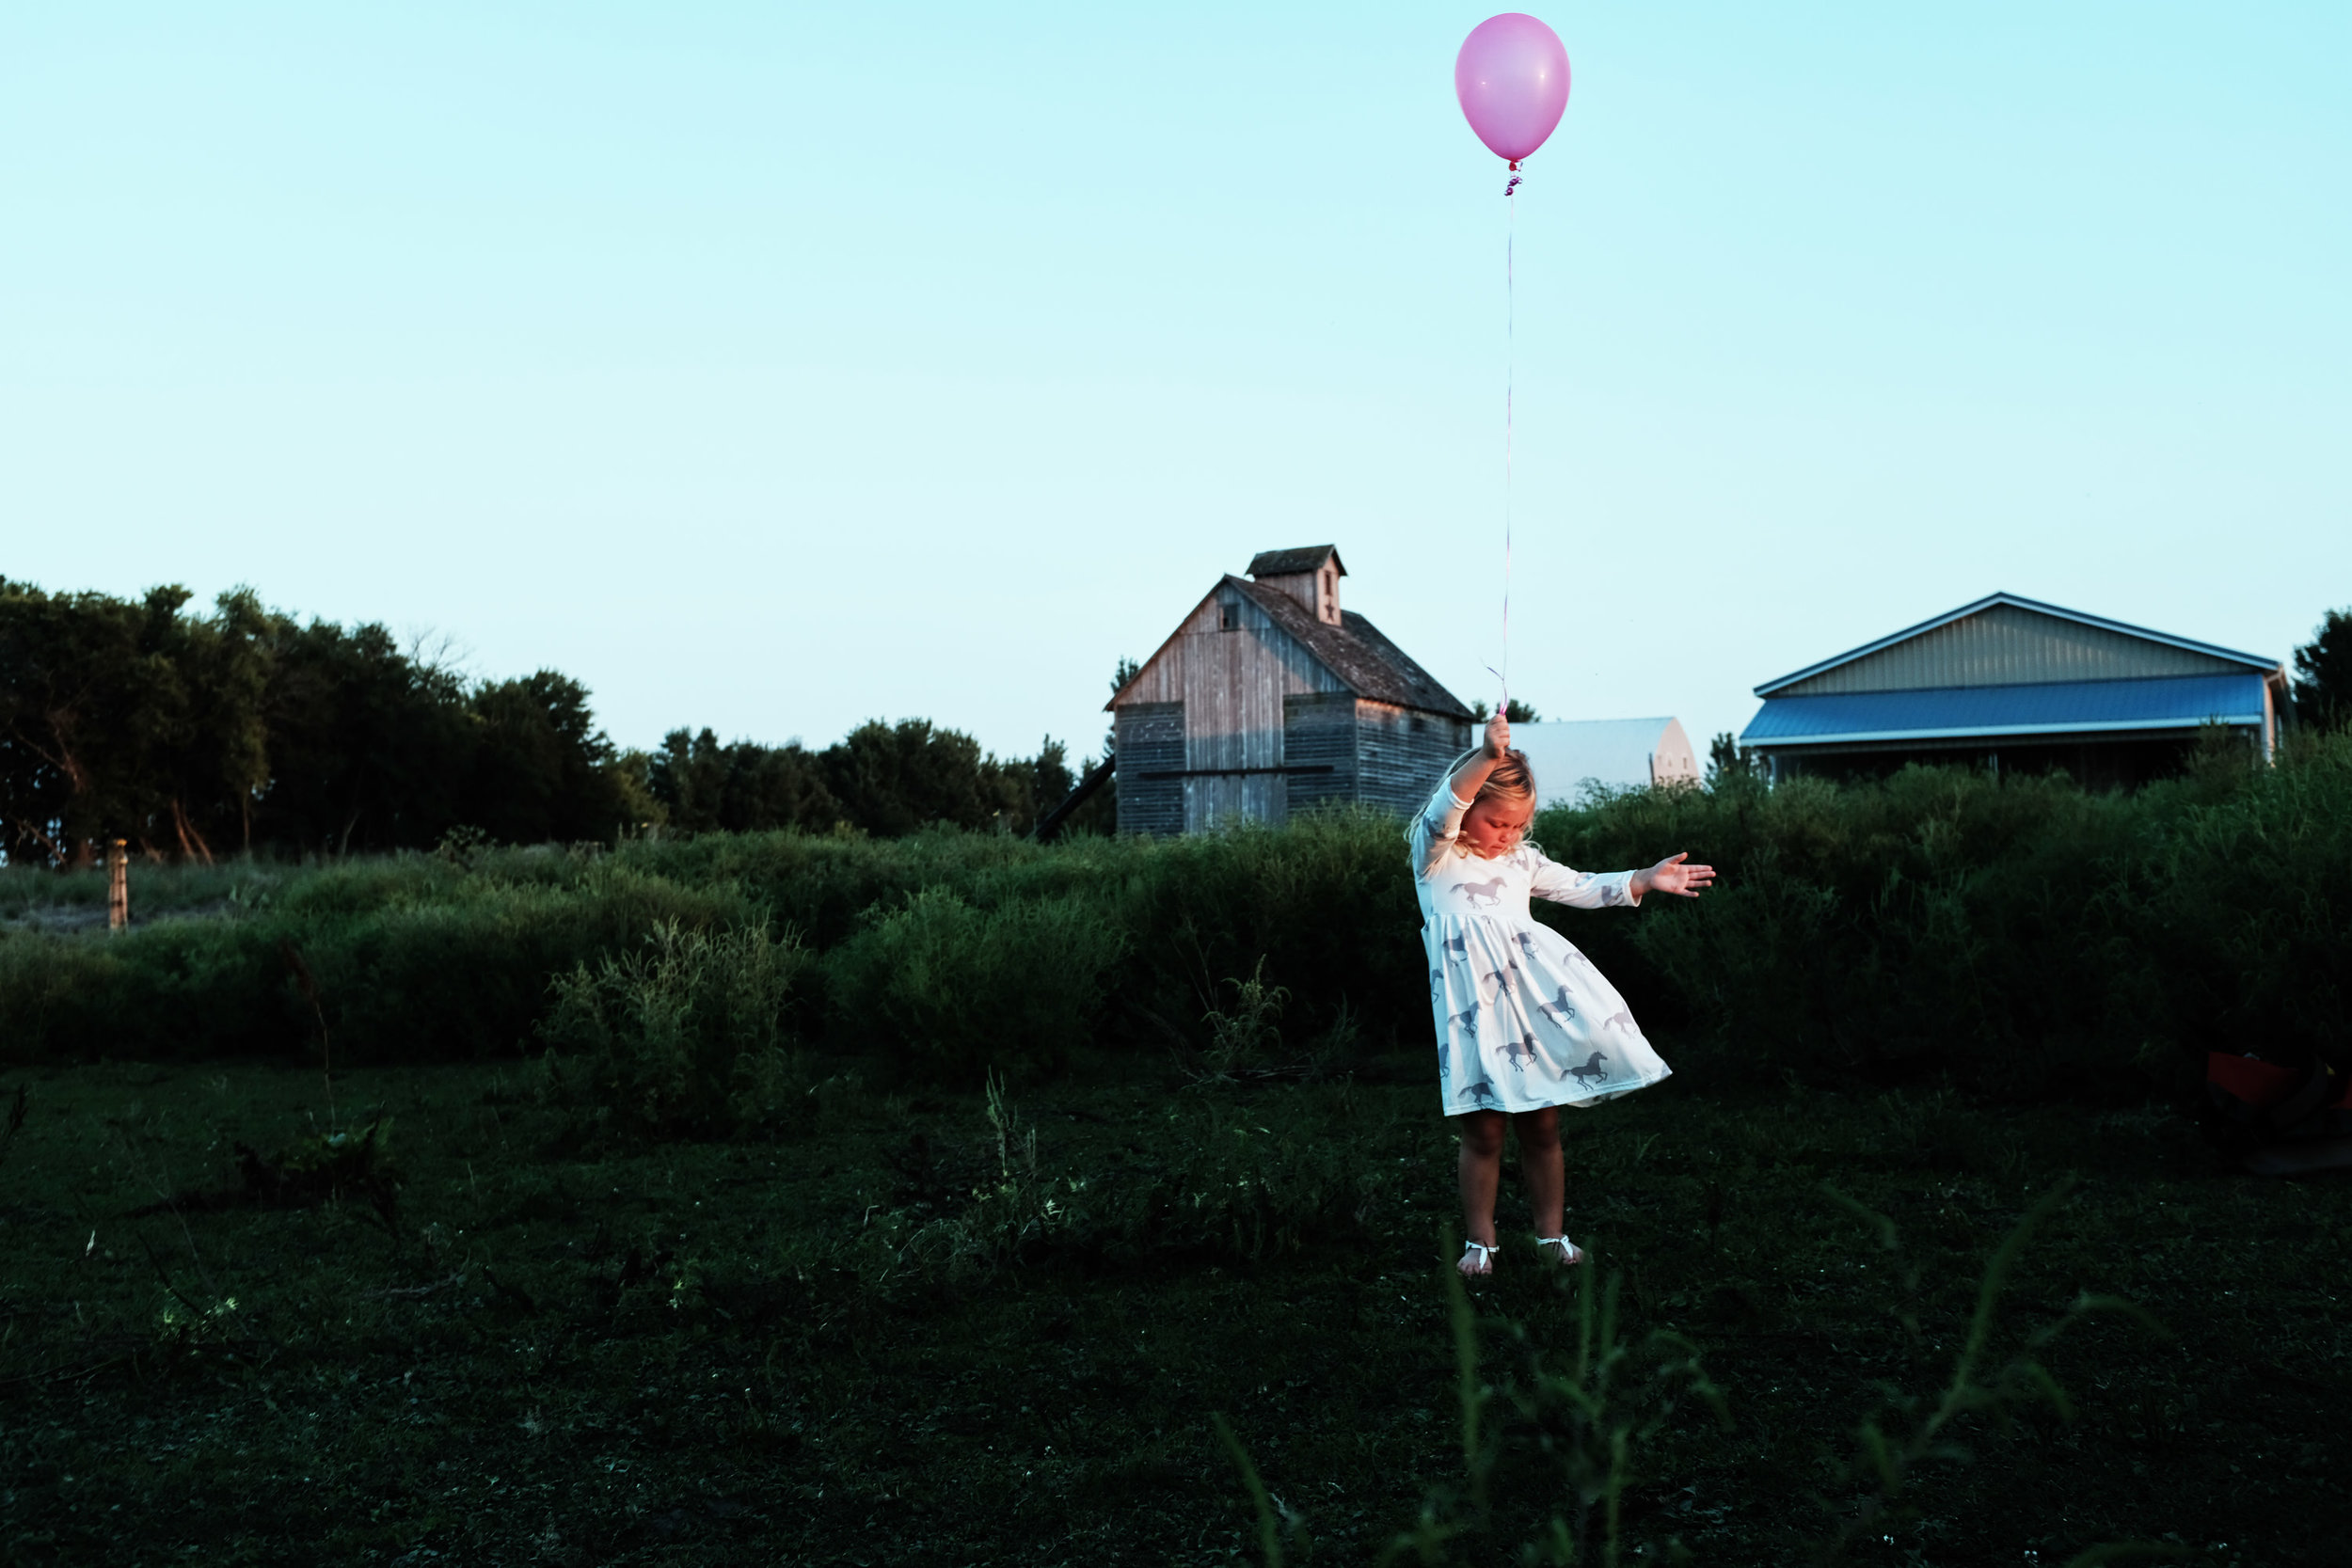 A girl playing with a balloon in a field near Ames, Iowa.